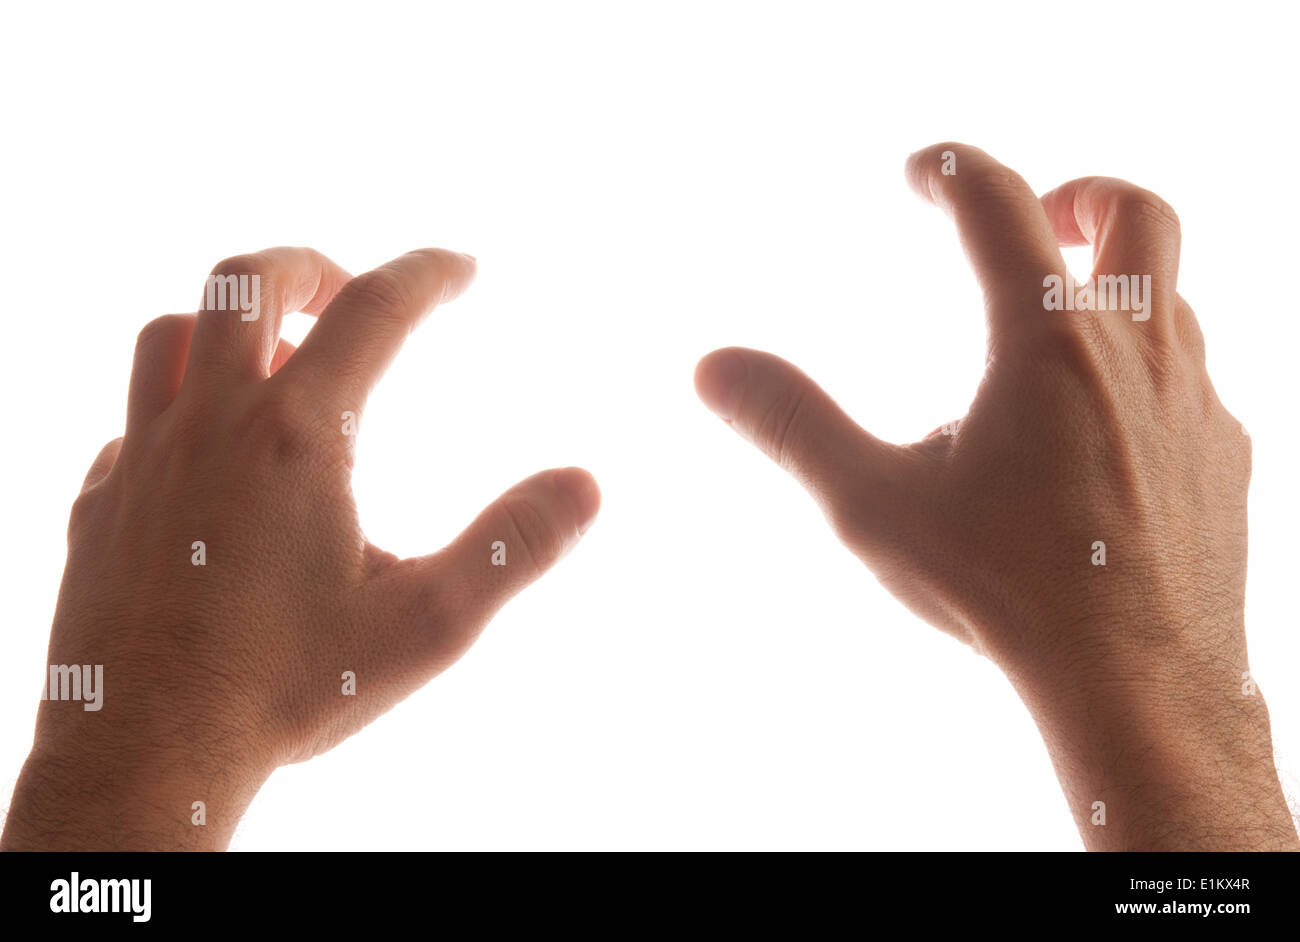 male hands grab gesture stock photo 69893735 alamy